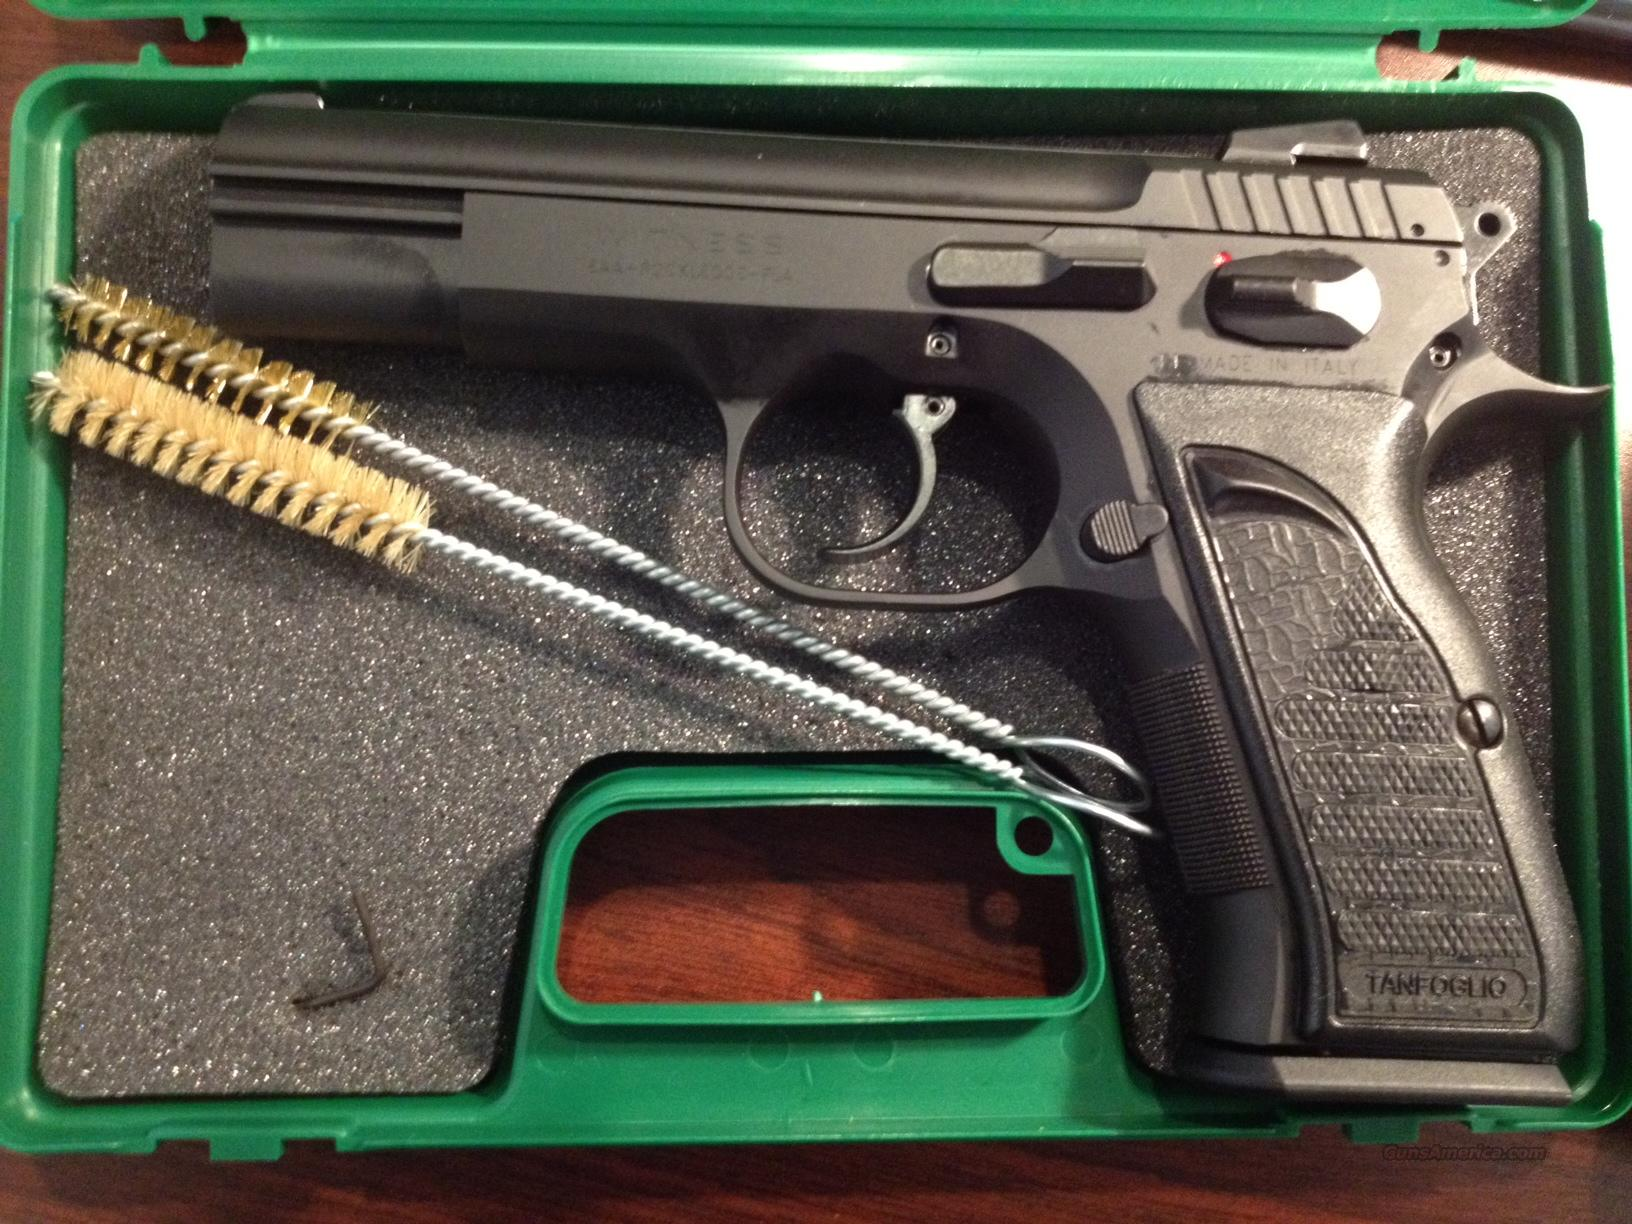 EAA TANFOGLIO  WITNESS .45ACP 10RD LIFETIME WARRANTY  Guns > Pistols > EAA Pistols > Other